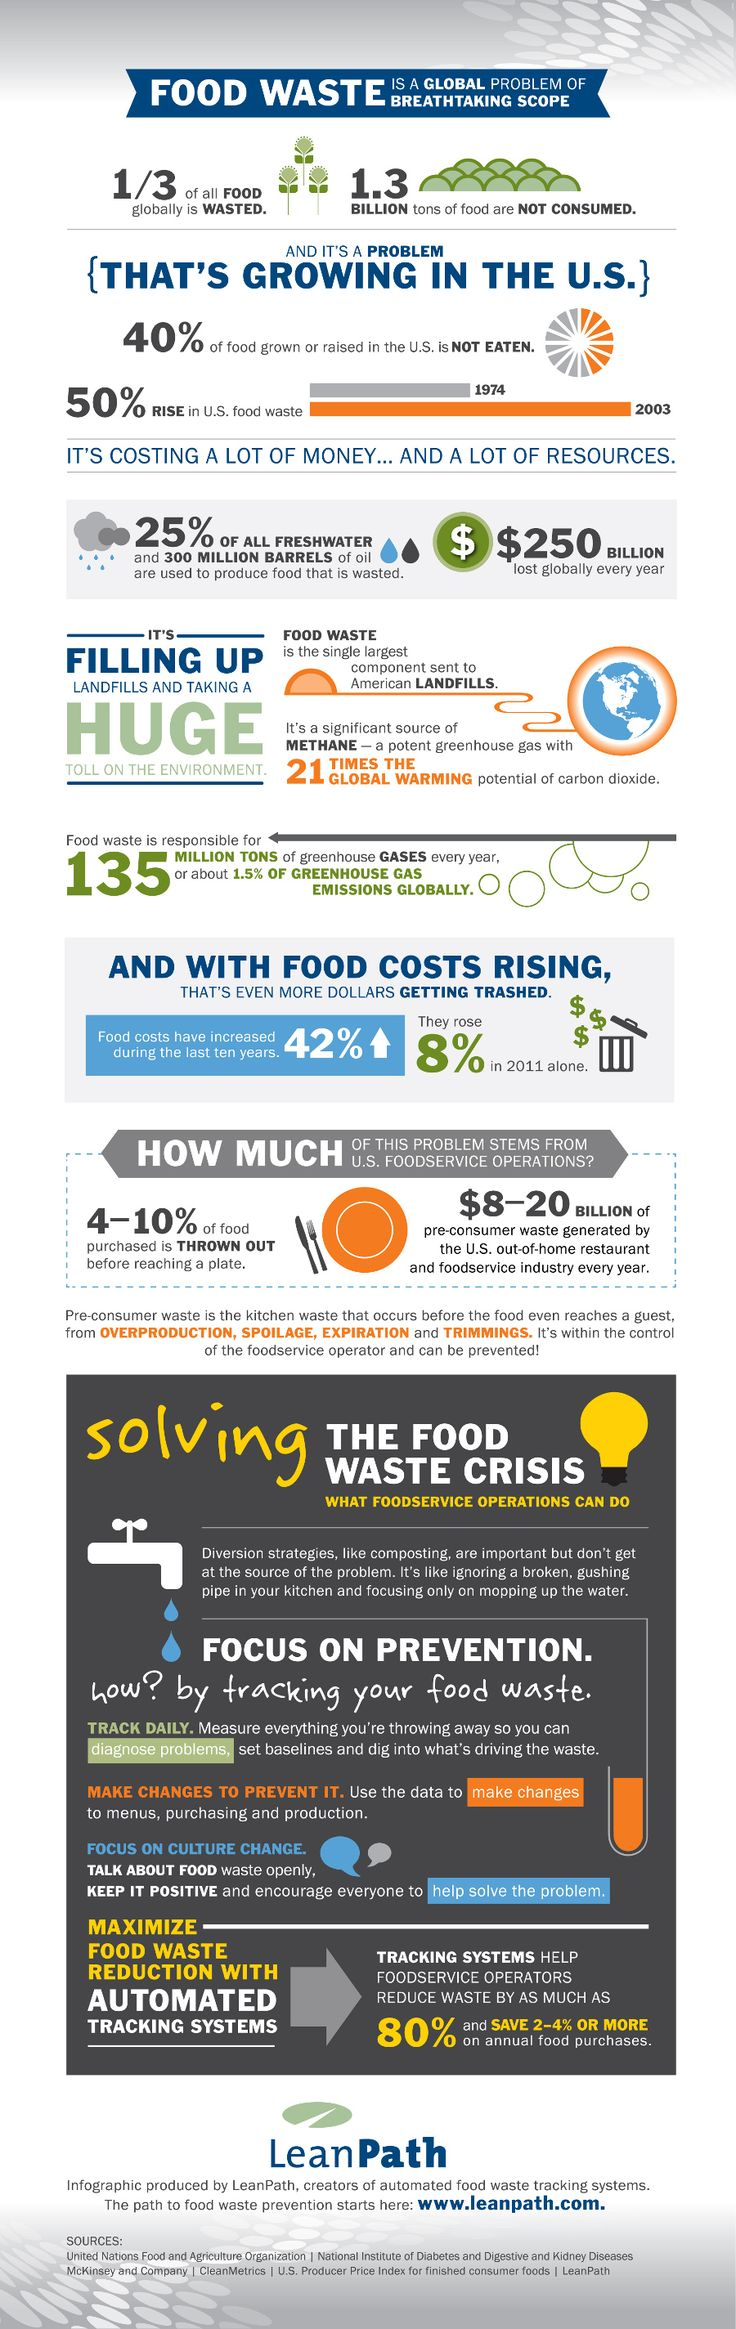 Food waste is a global problem of breathtaking scope